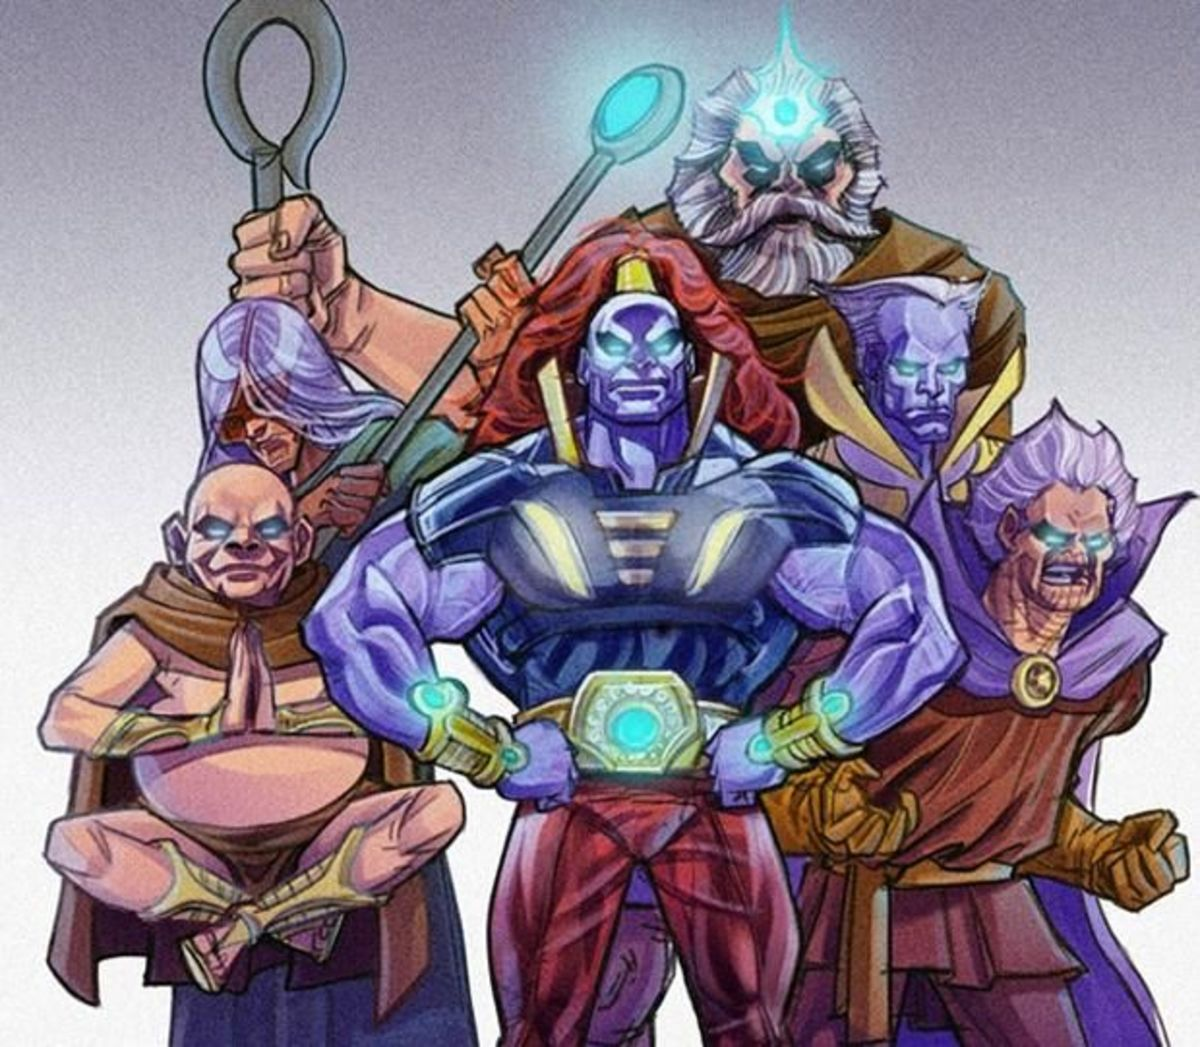 The Elders of the Universe